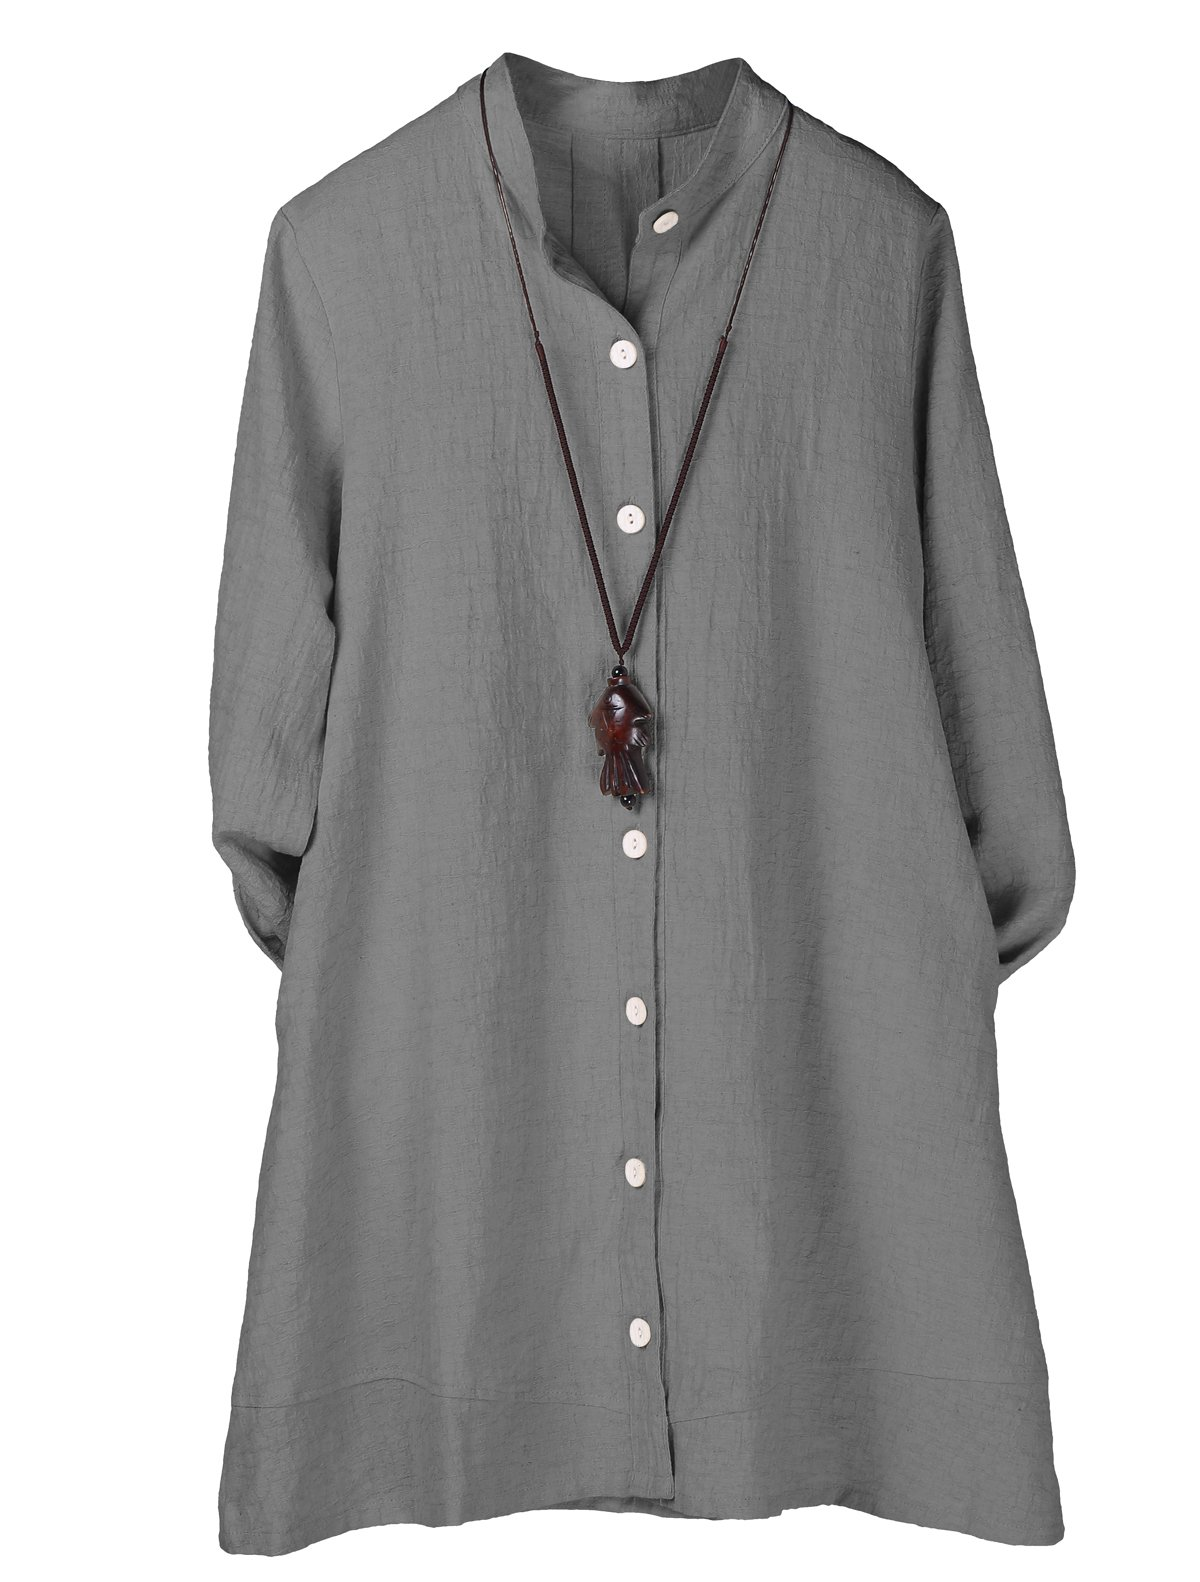 Minibee Women's Button Down Jacket Long Sleeve Jacquard Blouses Cardigan Gray 2XL